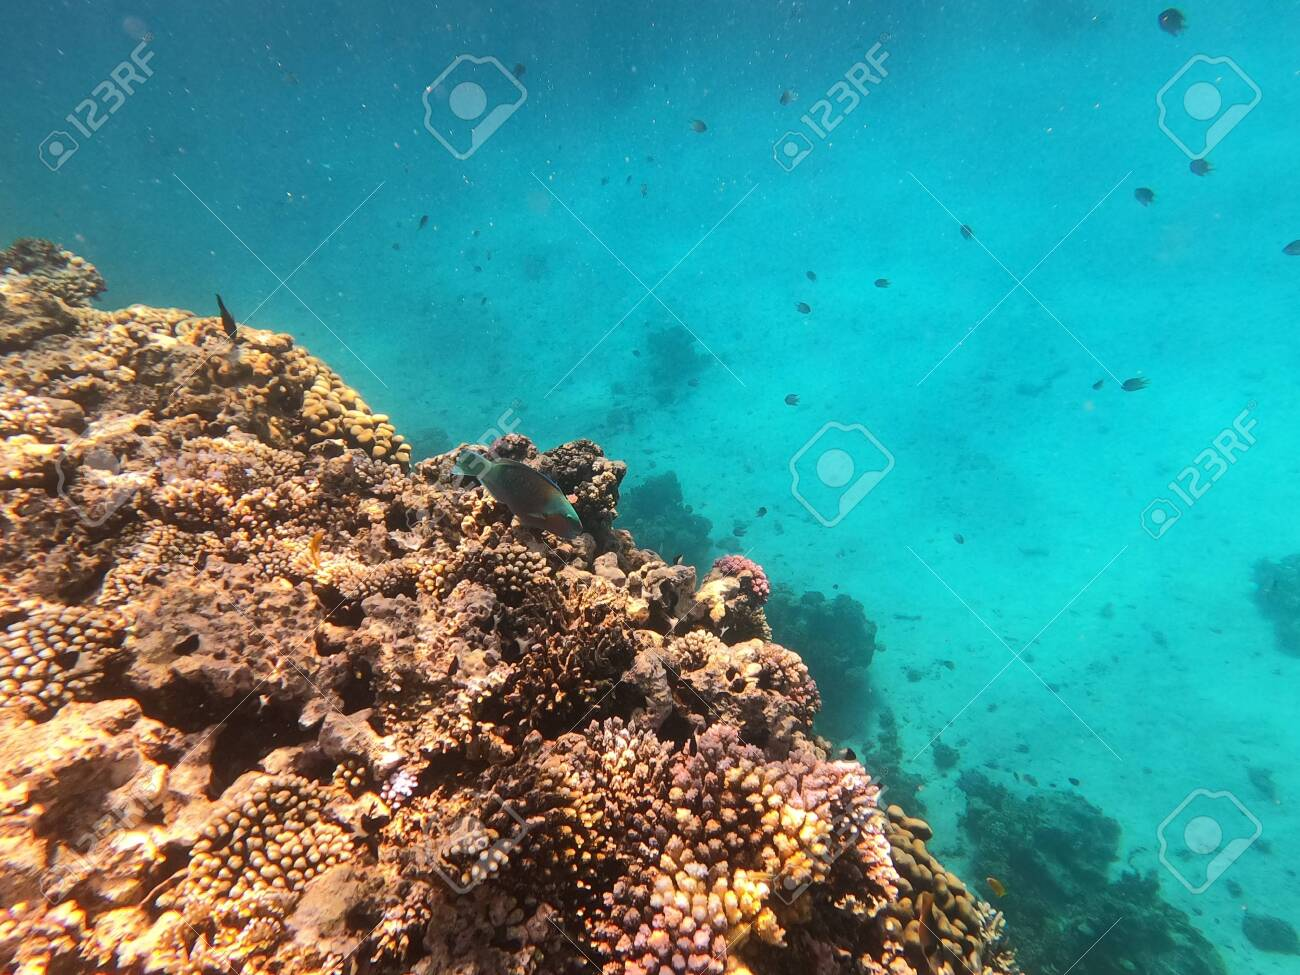 Reef with lots of colorful corals and lots of fish in clear blue water in the Red Sea near Hurgharda, Egypt - 153126114